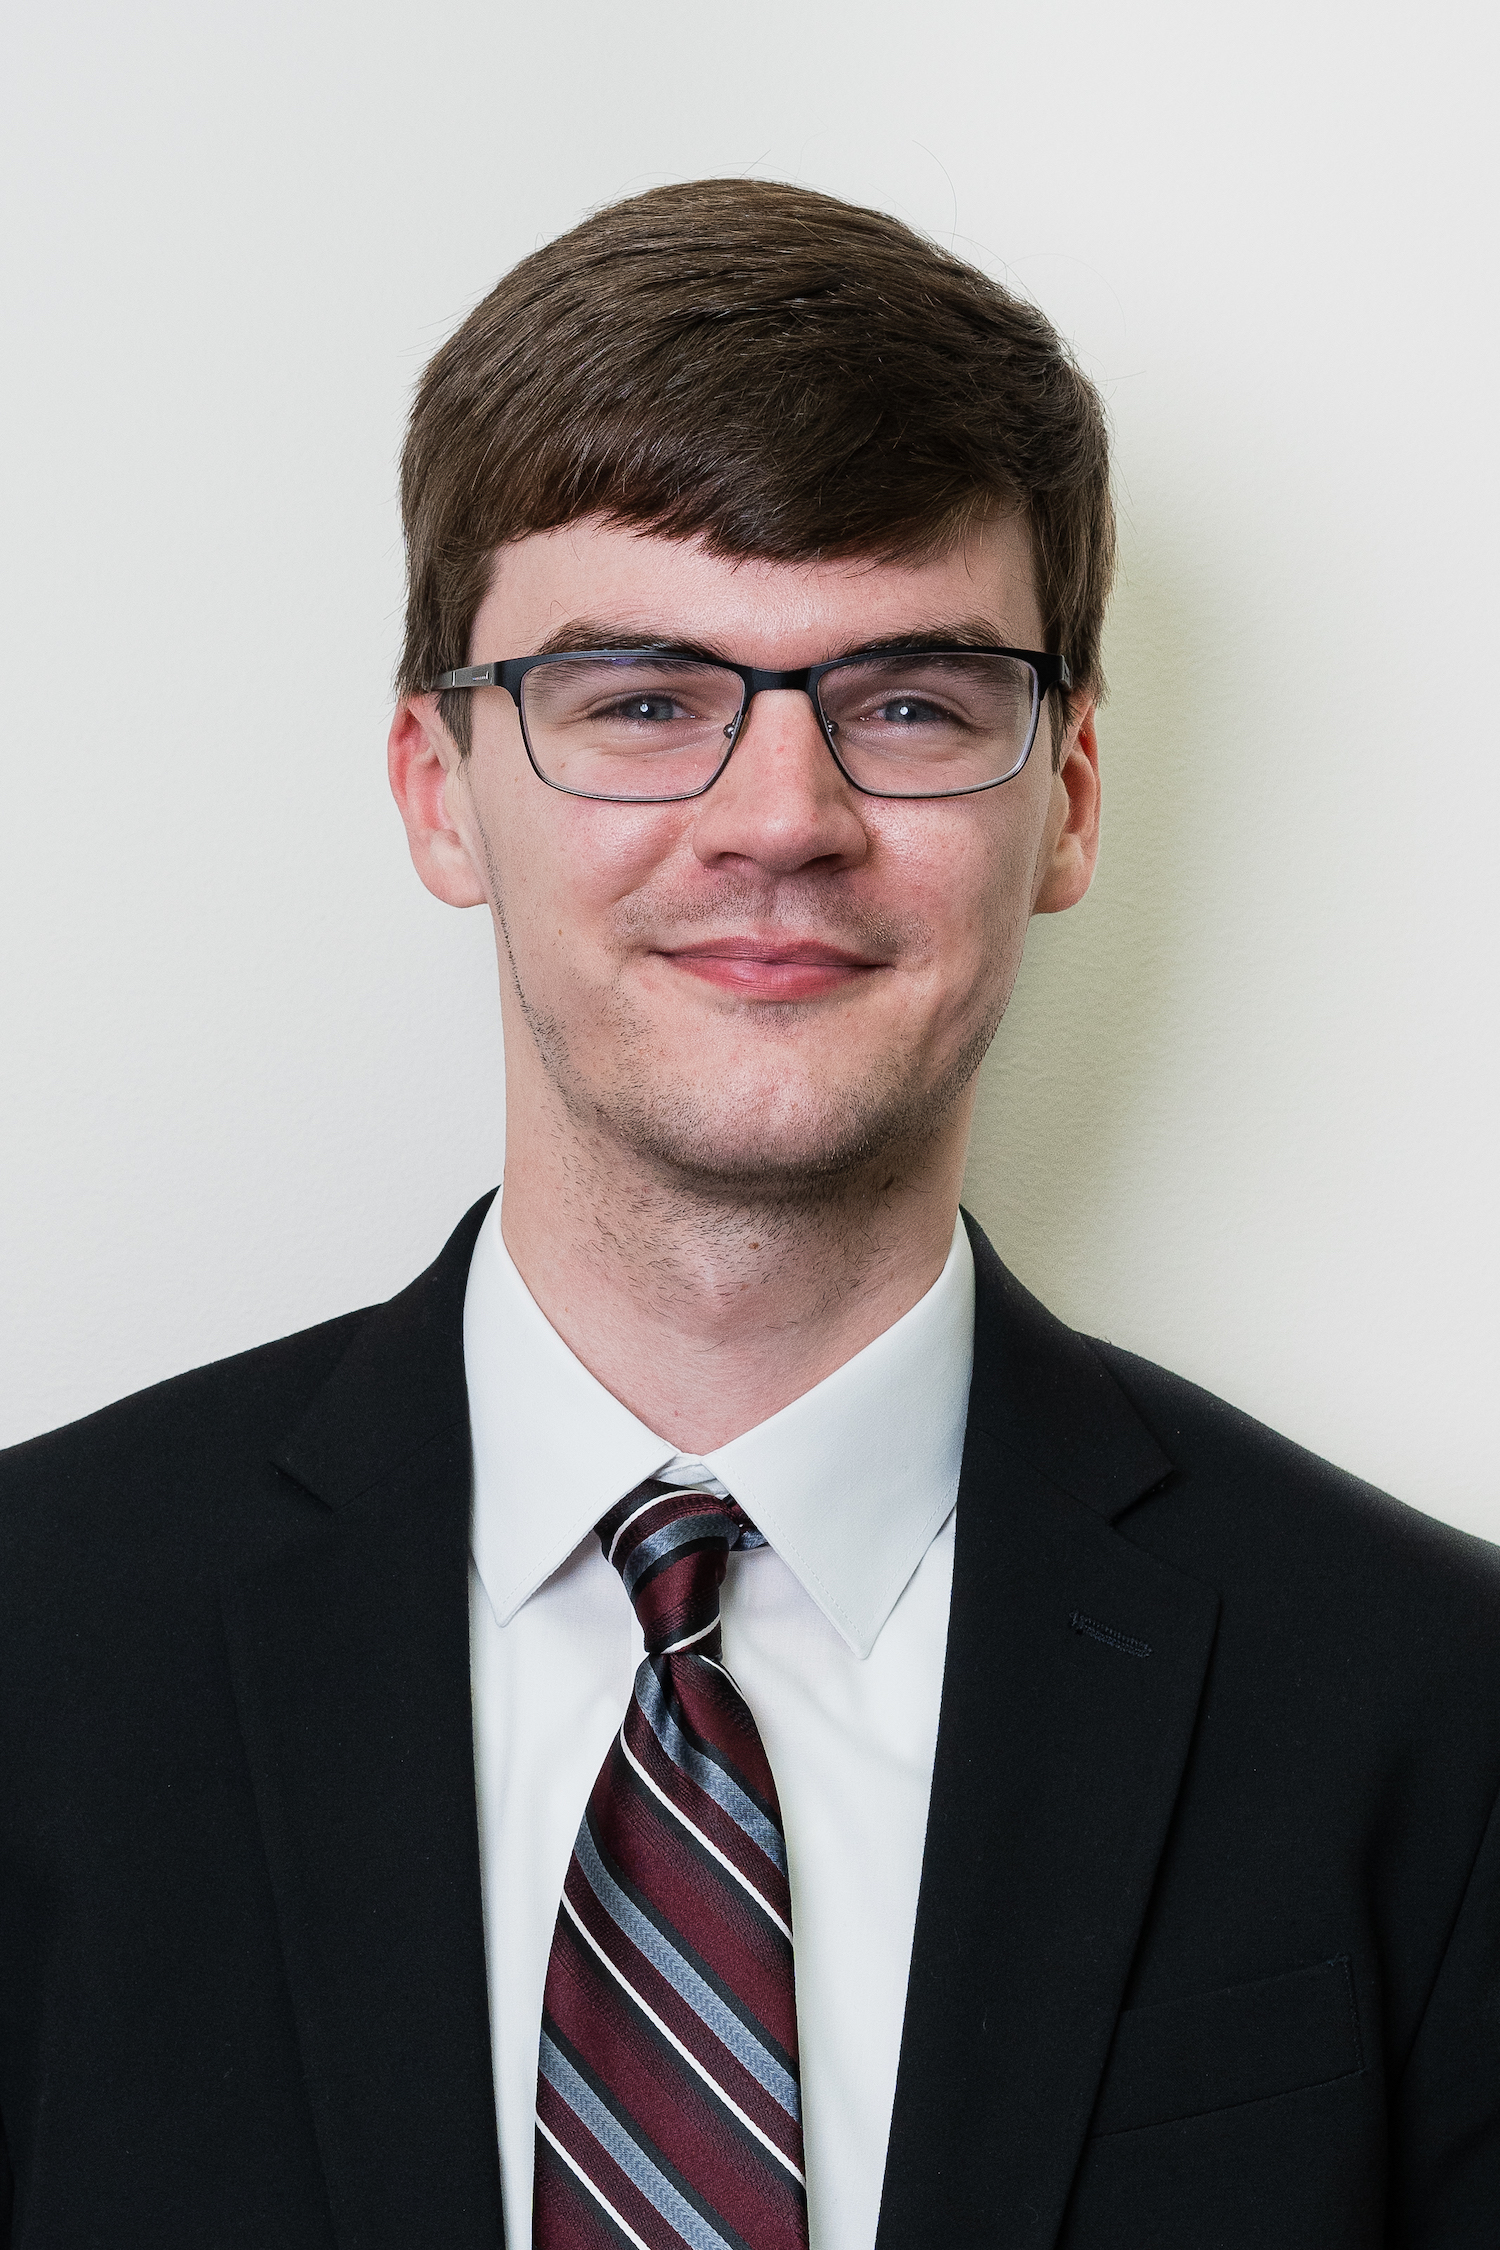 Connor Davis Working at Whitlock Accounting Services in Alcoa or pigeon forge Tennessee